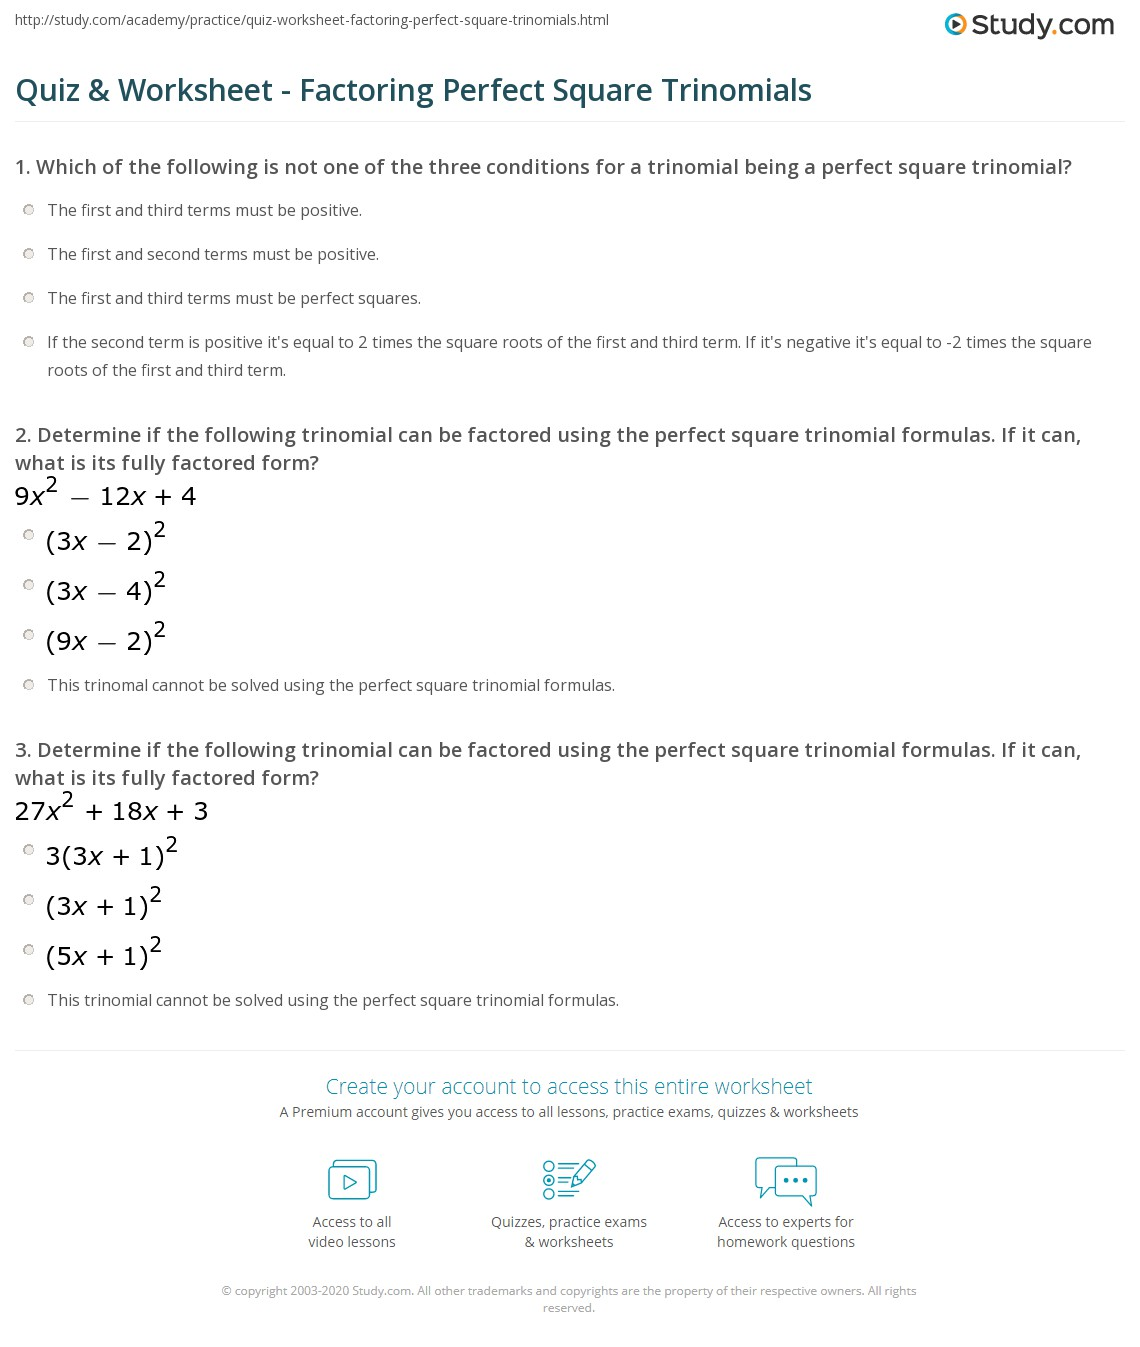 Print Factoring Perfect Square Trinomials Practice Problems Worksheet